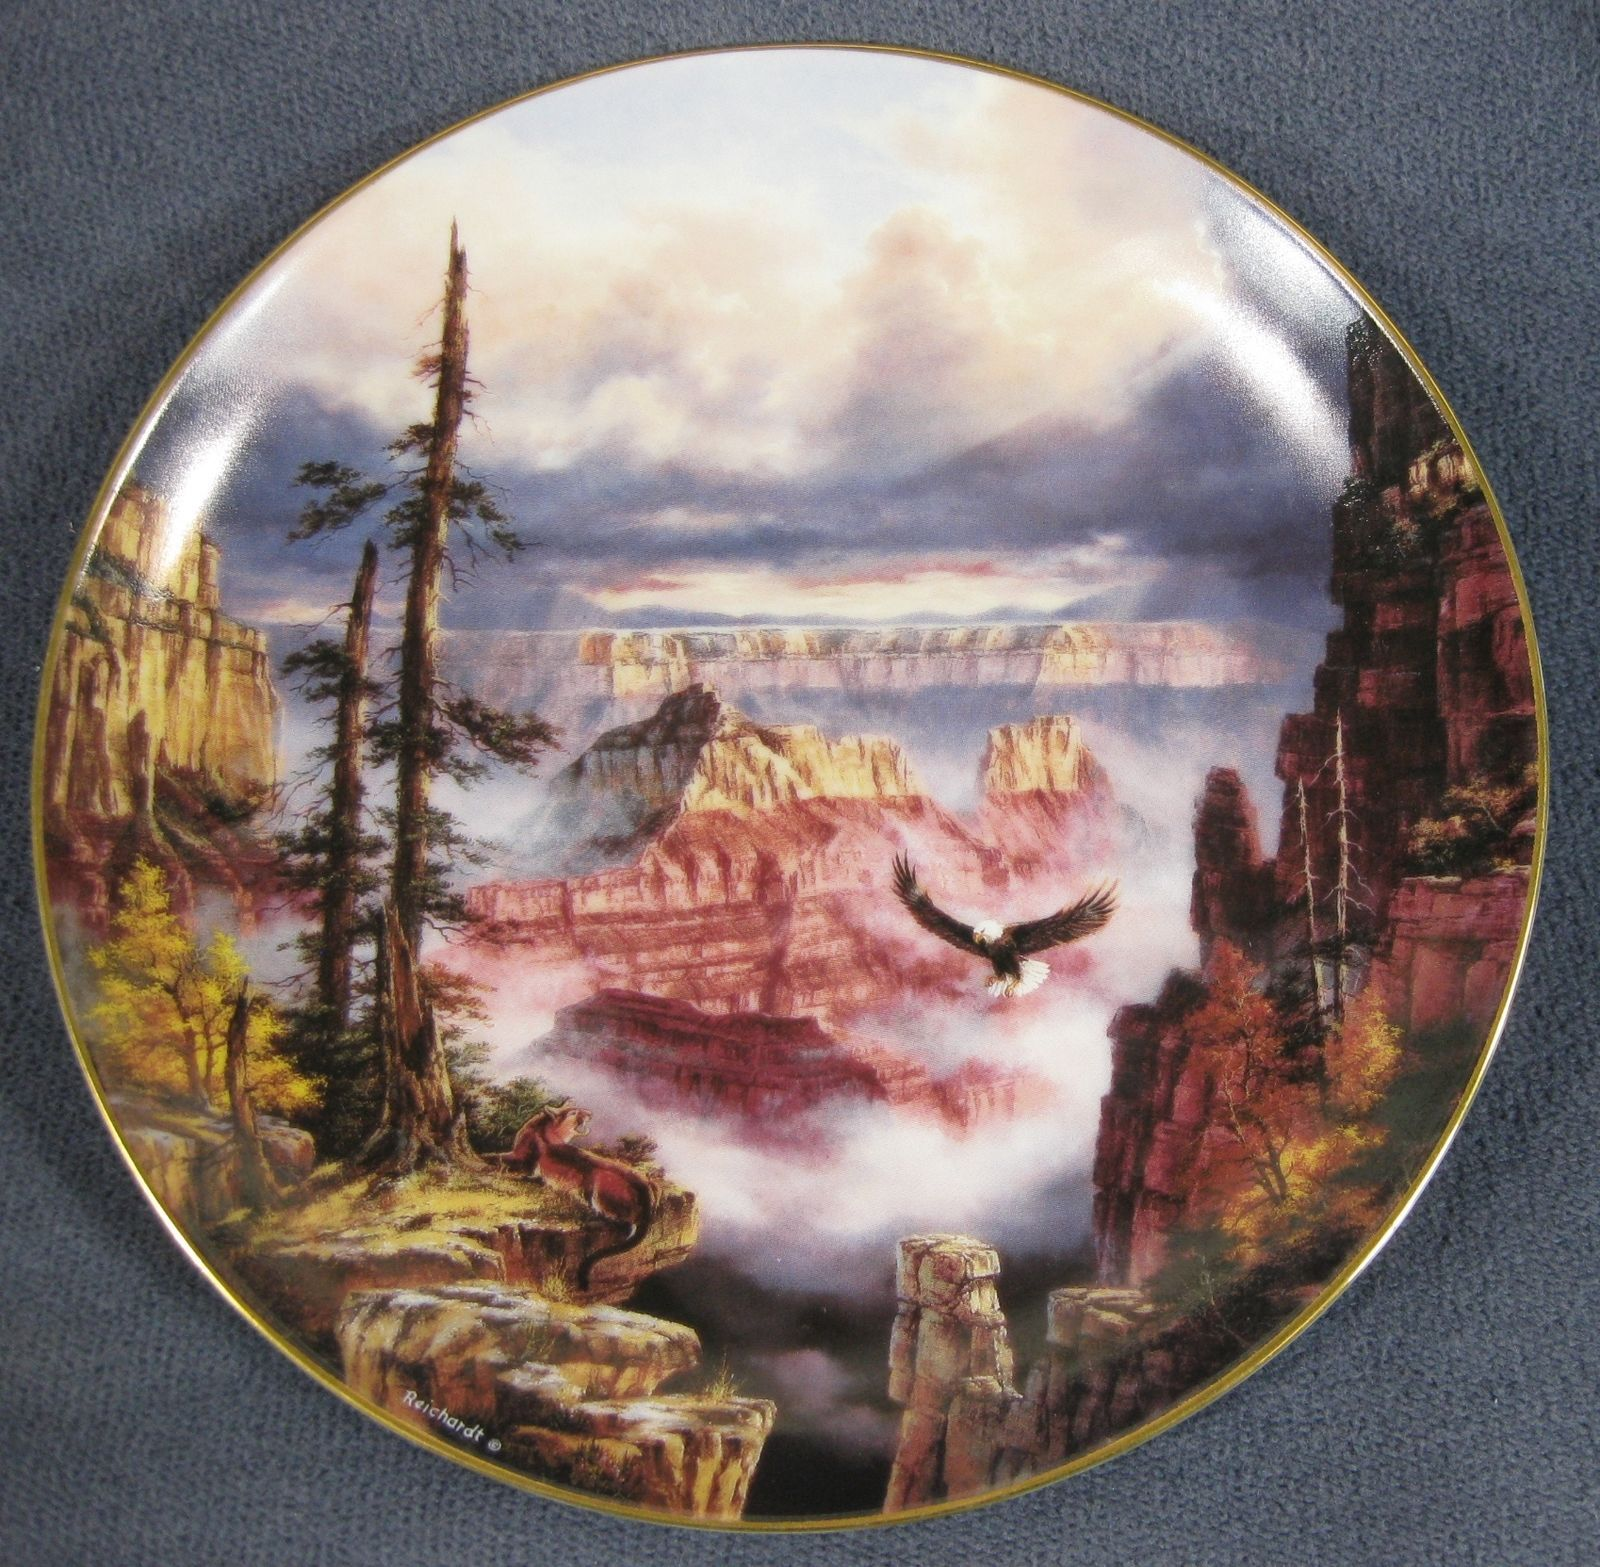 Primary image for Grand Canyon Where Eagles Soar Collector Plate God Bless America Rudy Reichardt